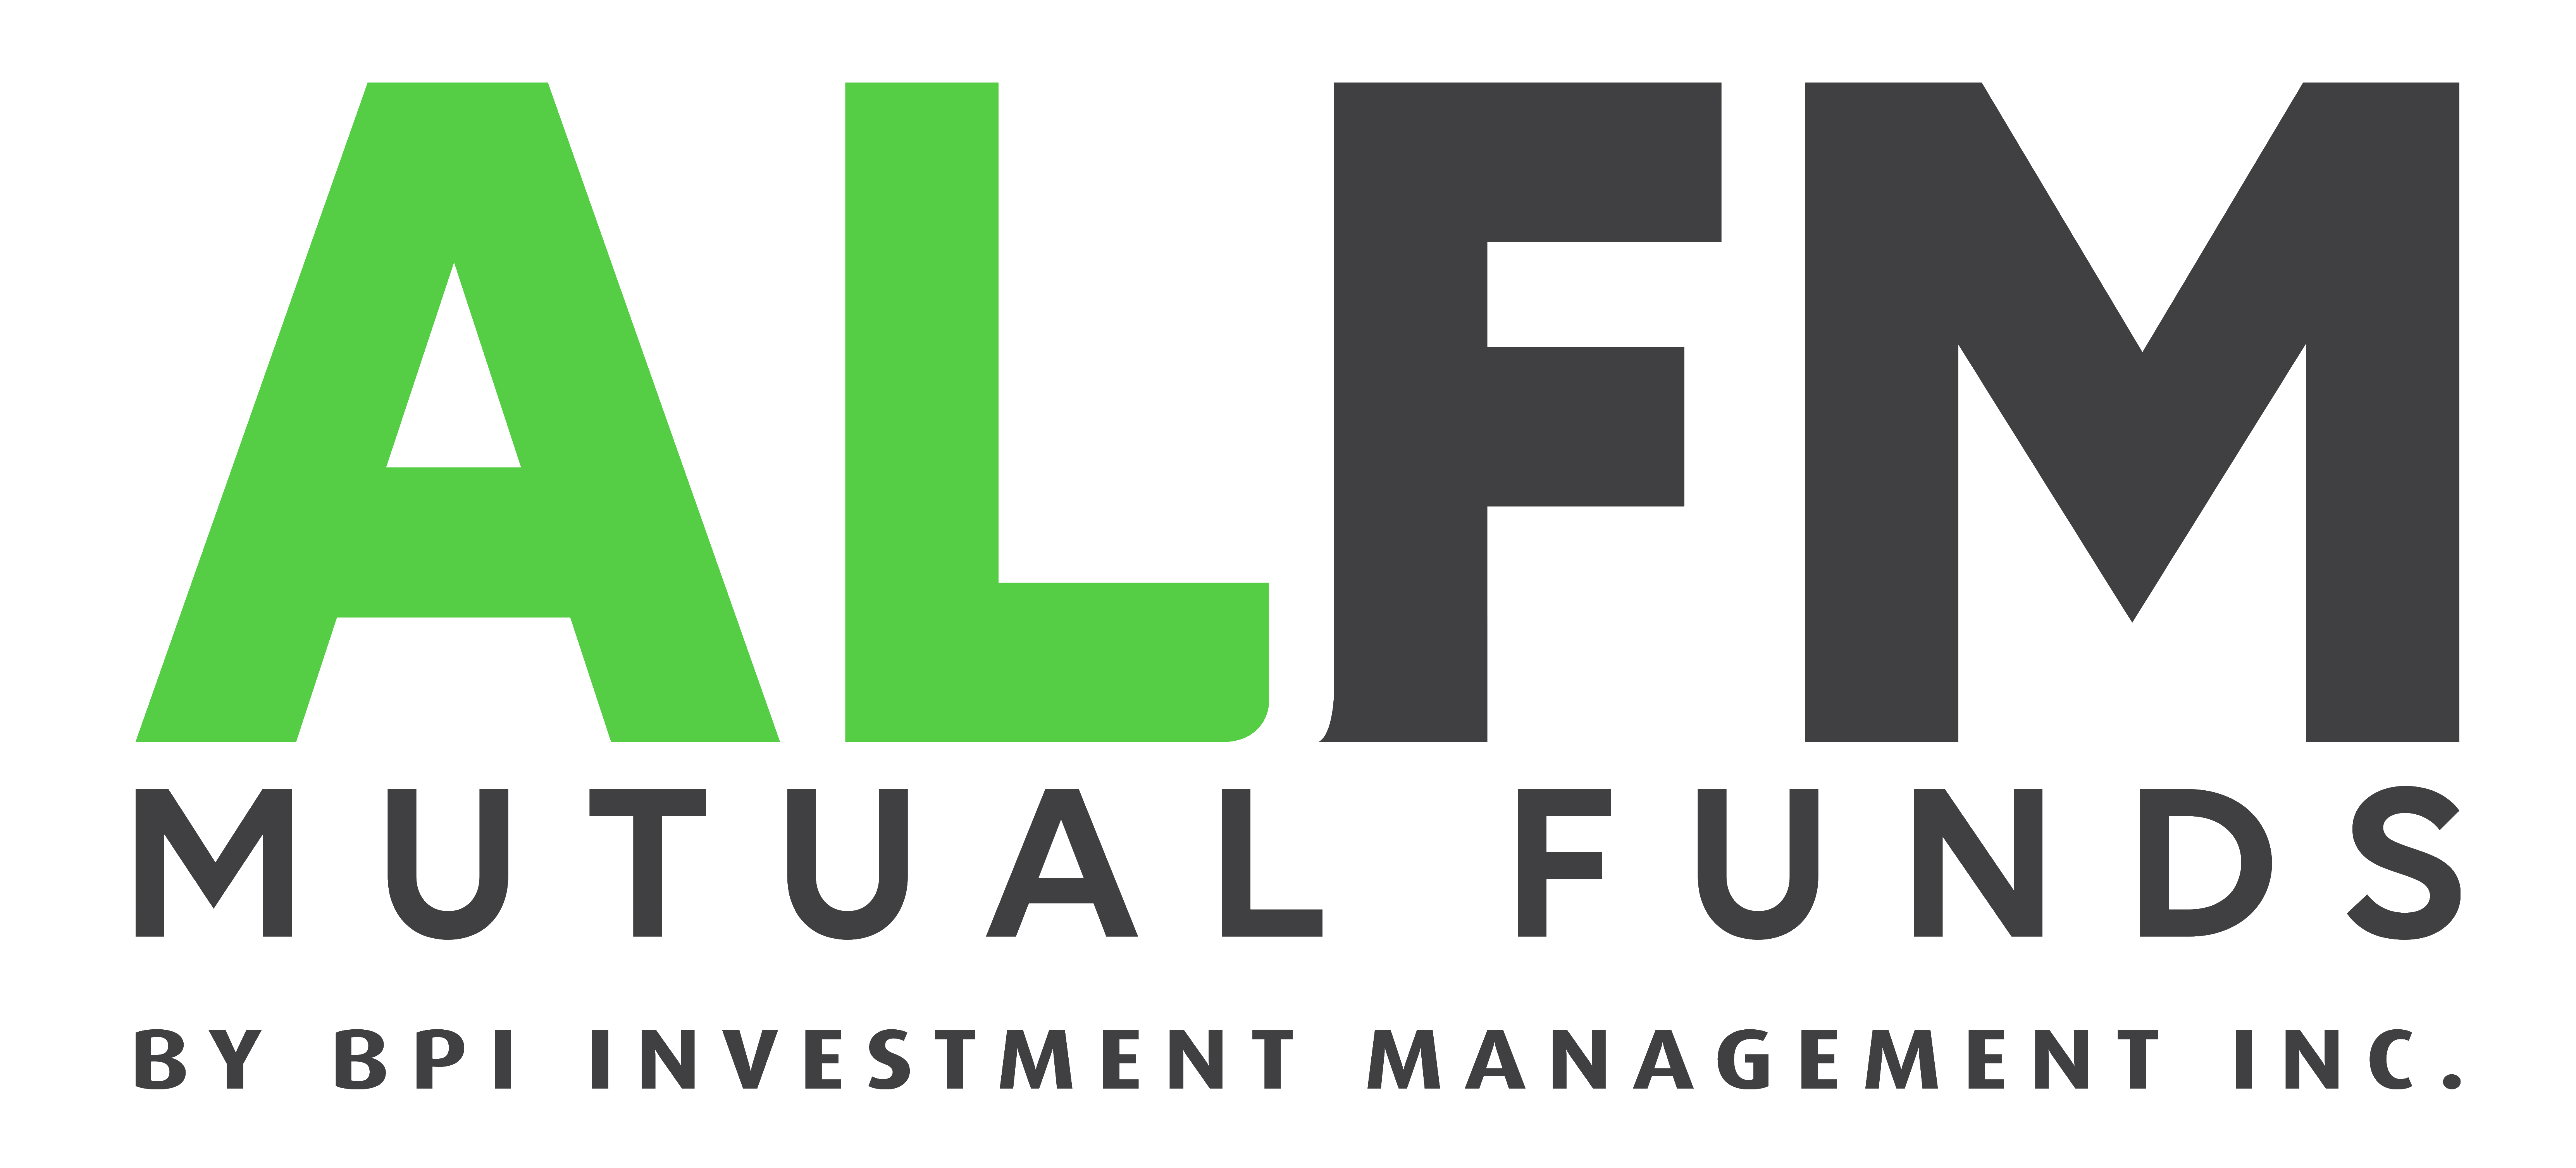 List of Mutual Funds in the Philippines - HealthyPinoy